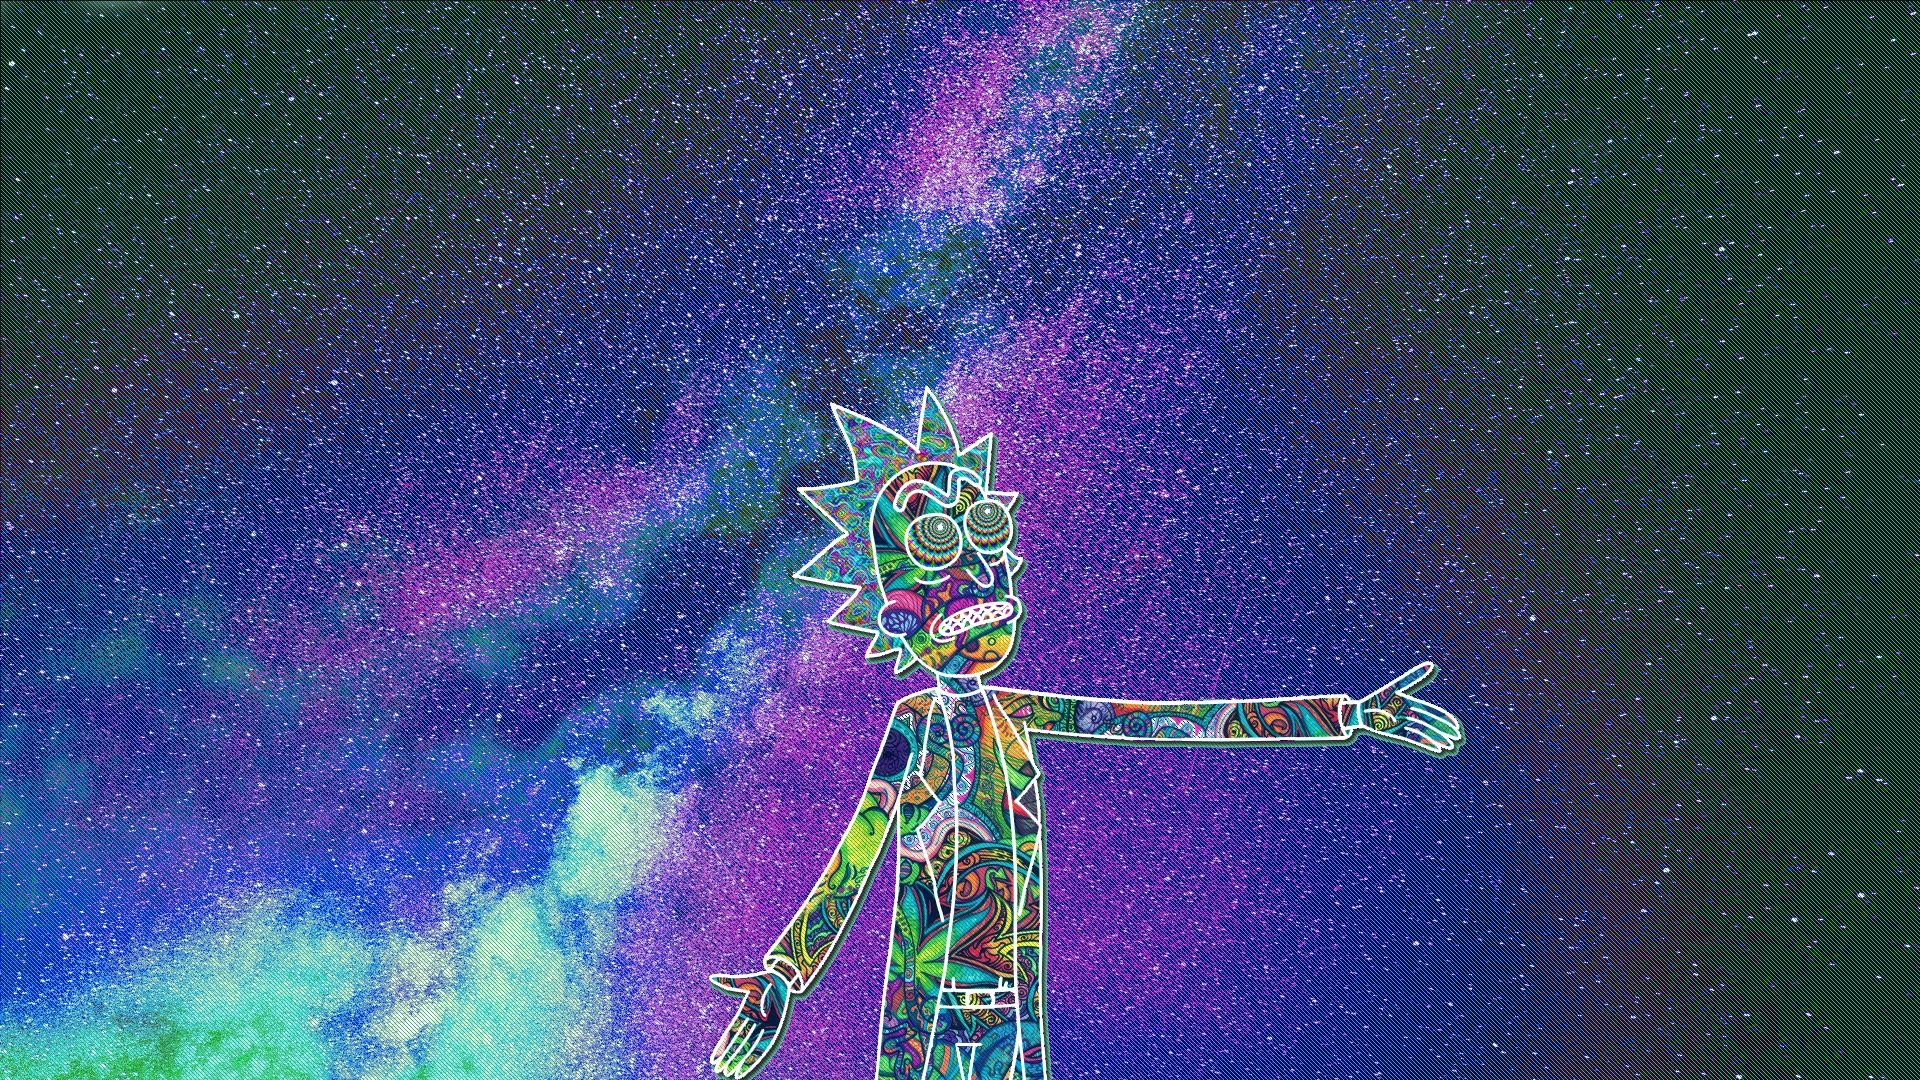 Iphone live wallpaper rick and morty